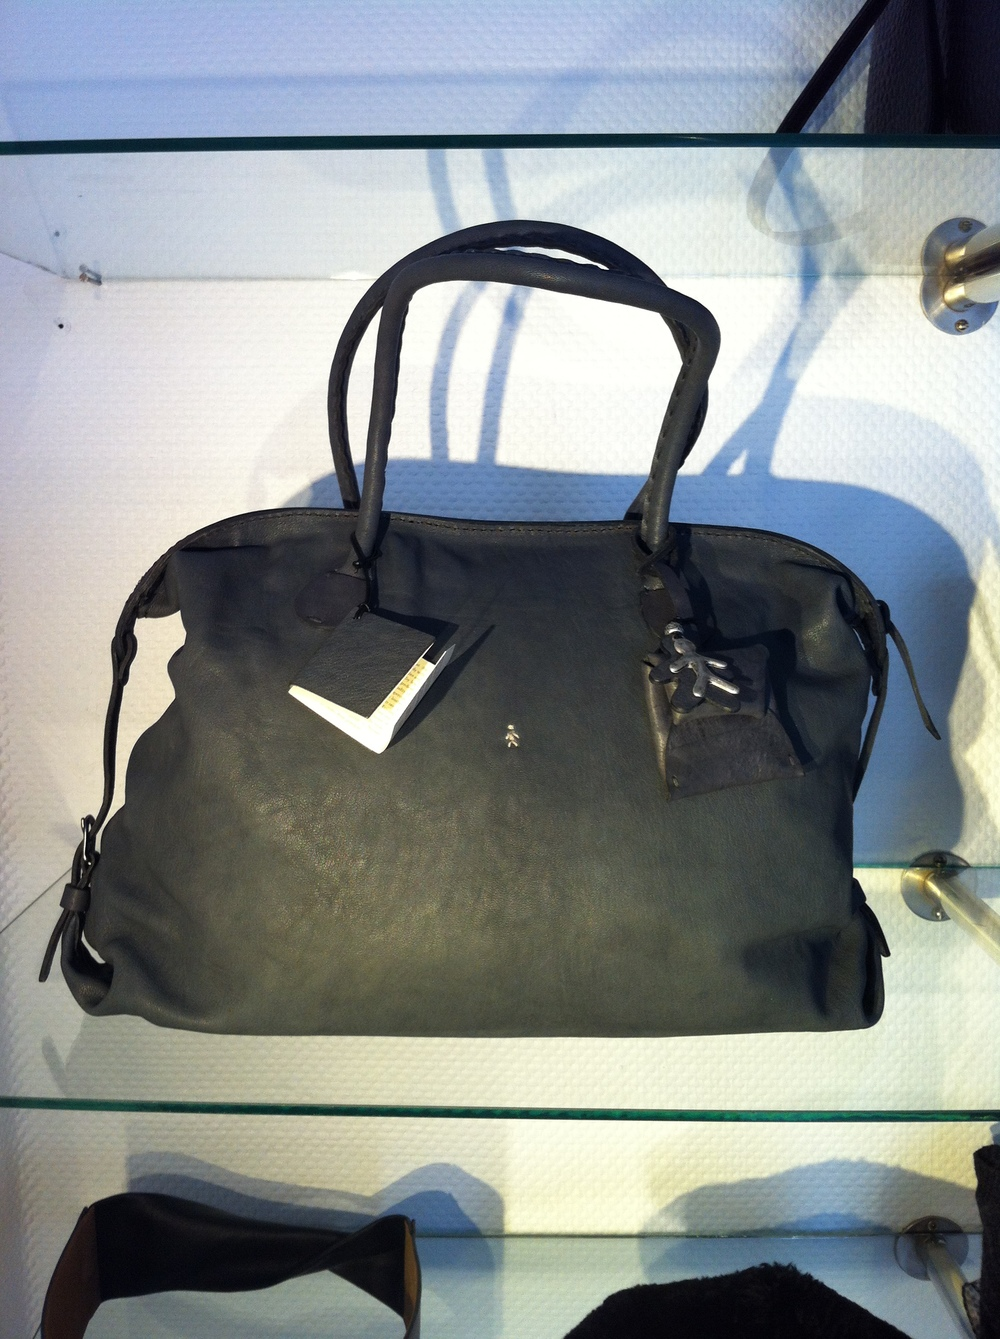 Bag by Henry Beguelin